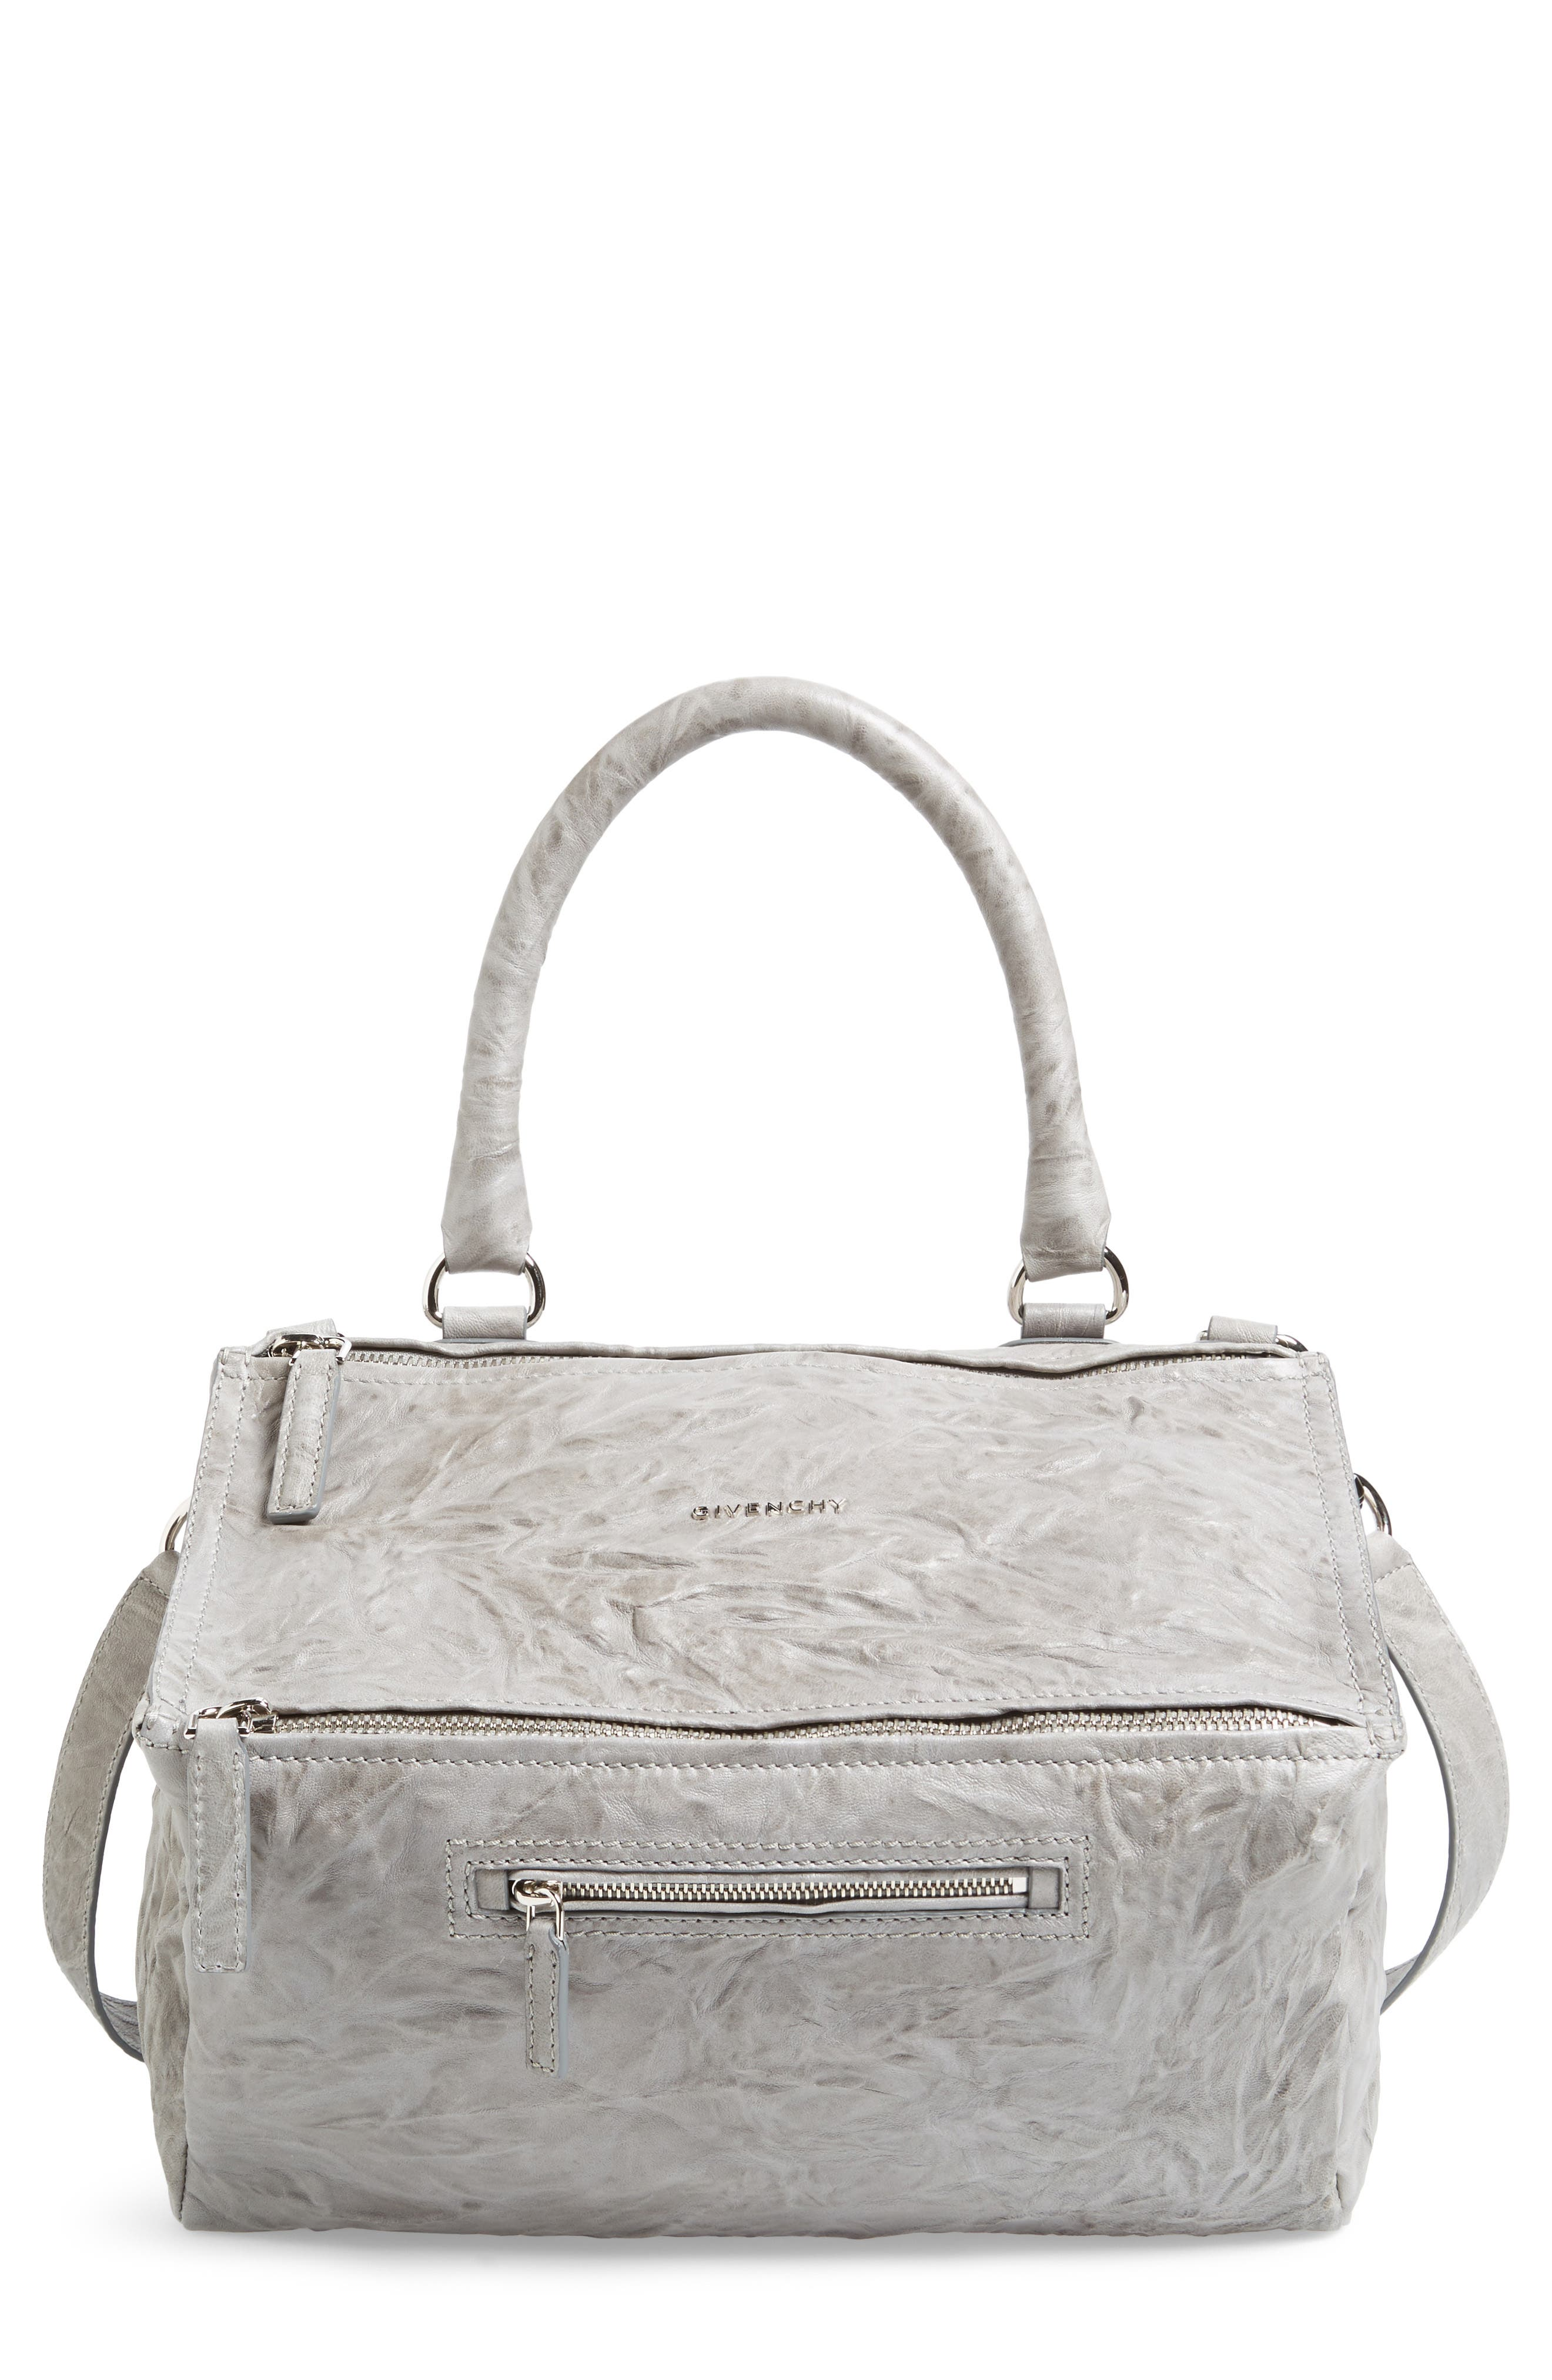 'Medium Pepe Pandora' Leather Satchel,                         Main,                         color, PEARL GREY